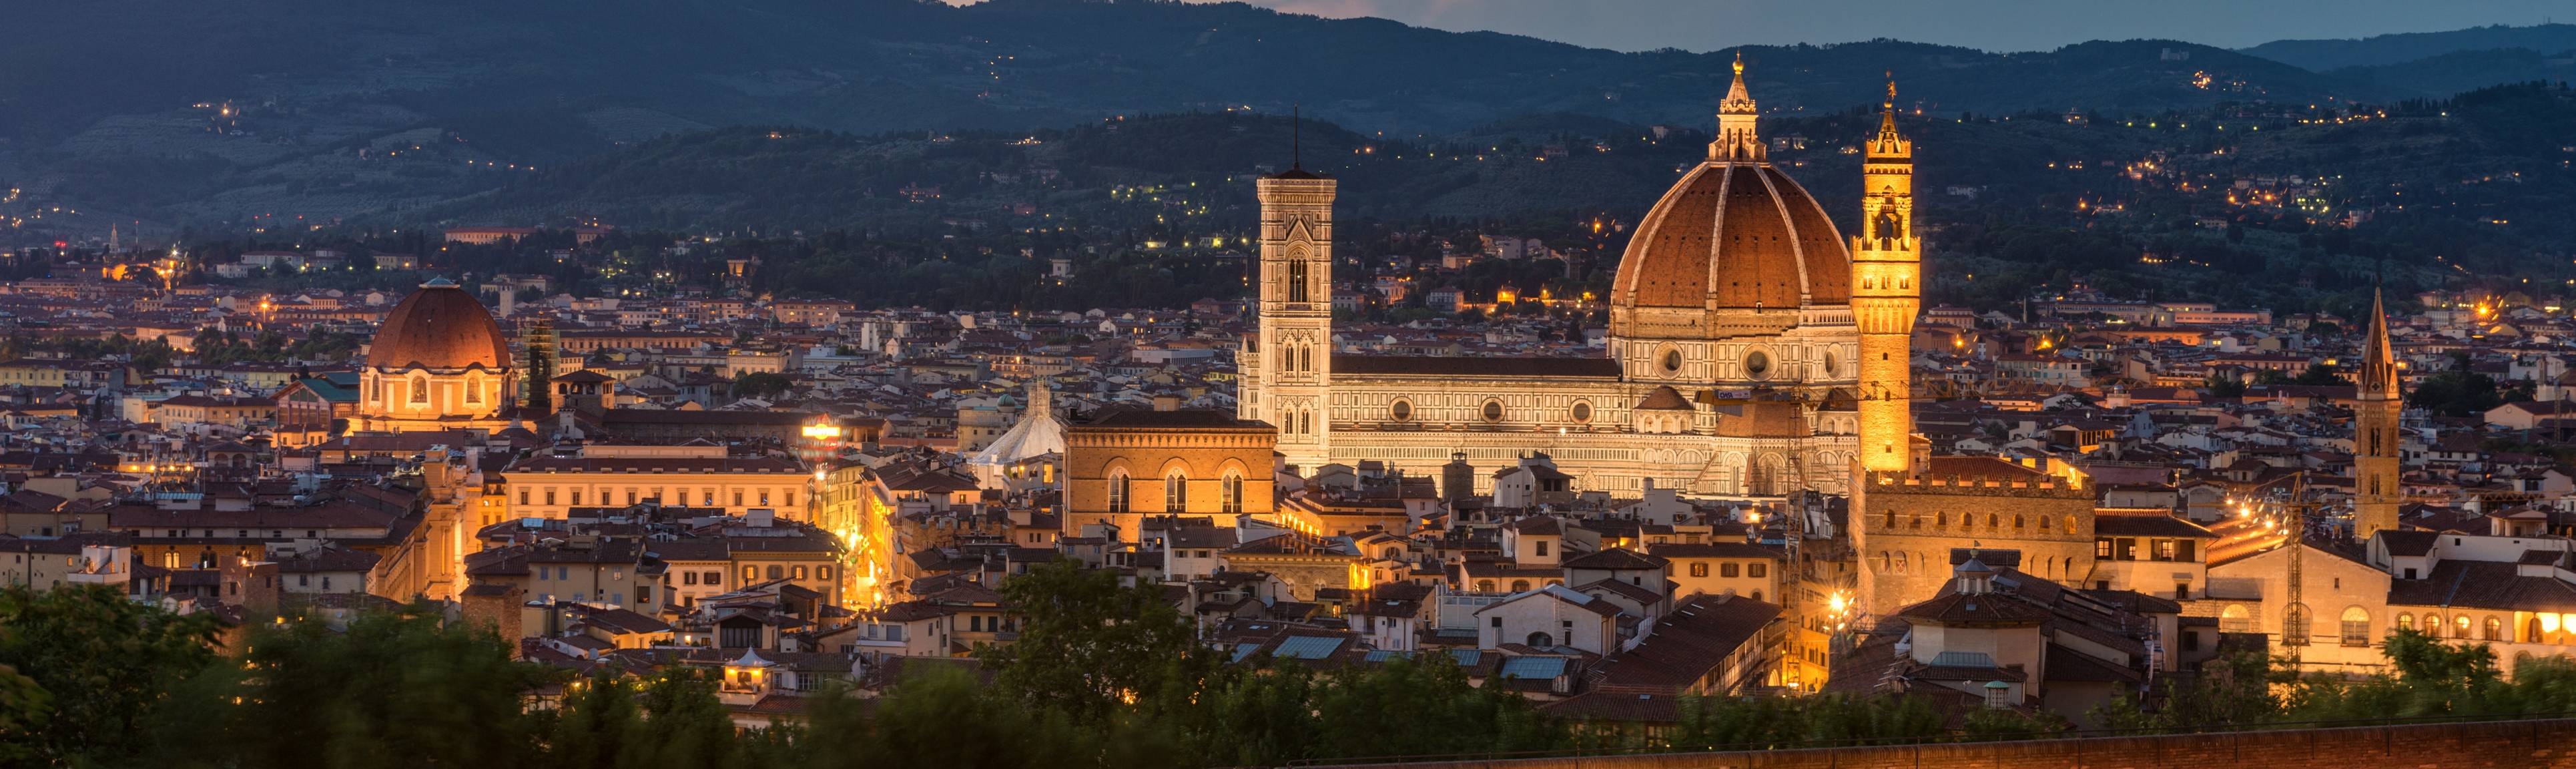 Beautifully lit view of evening in Florence, Italy